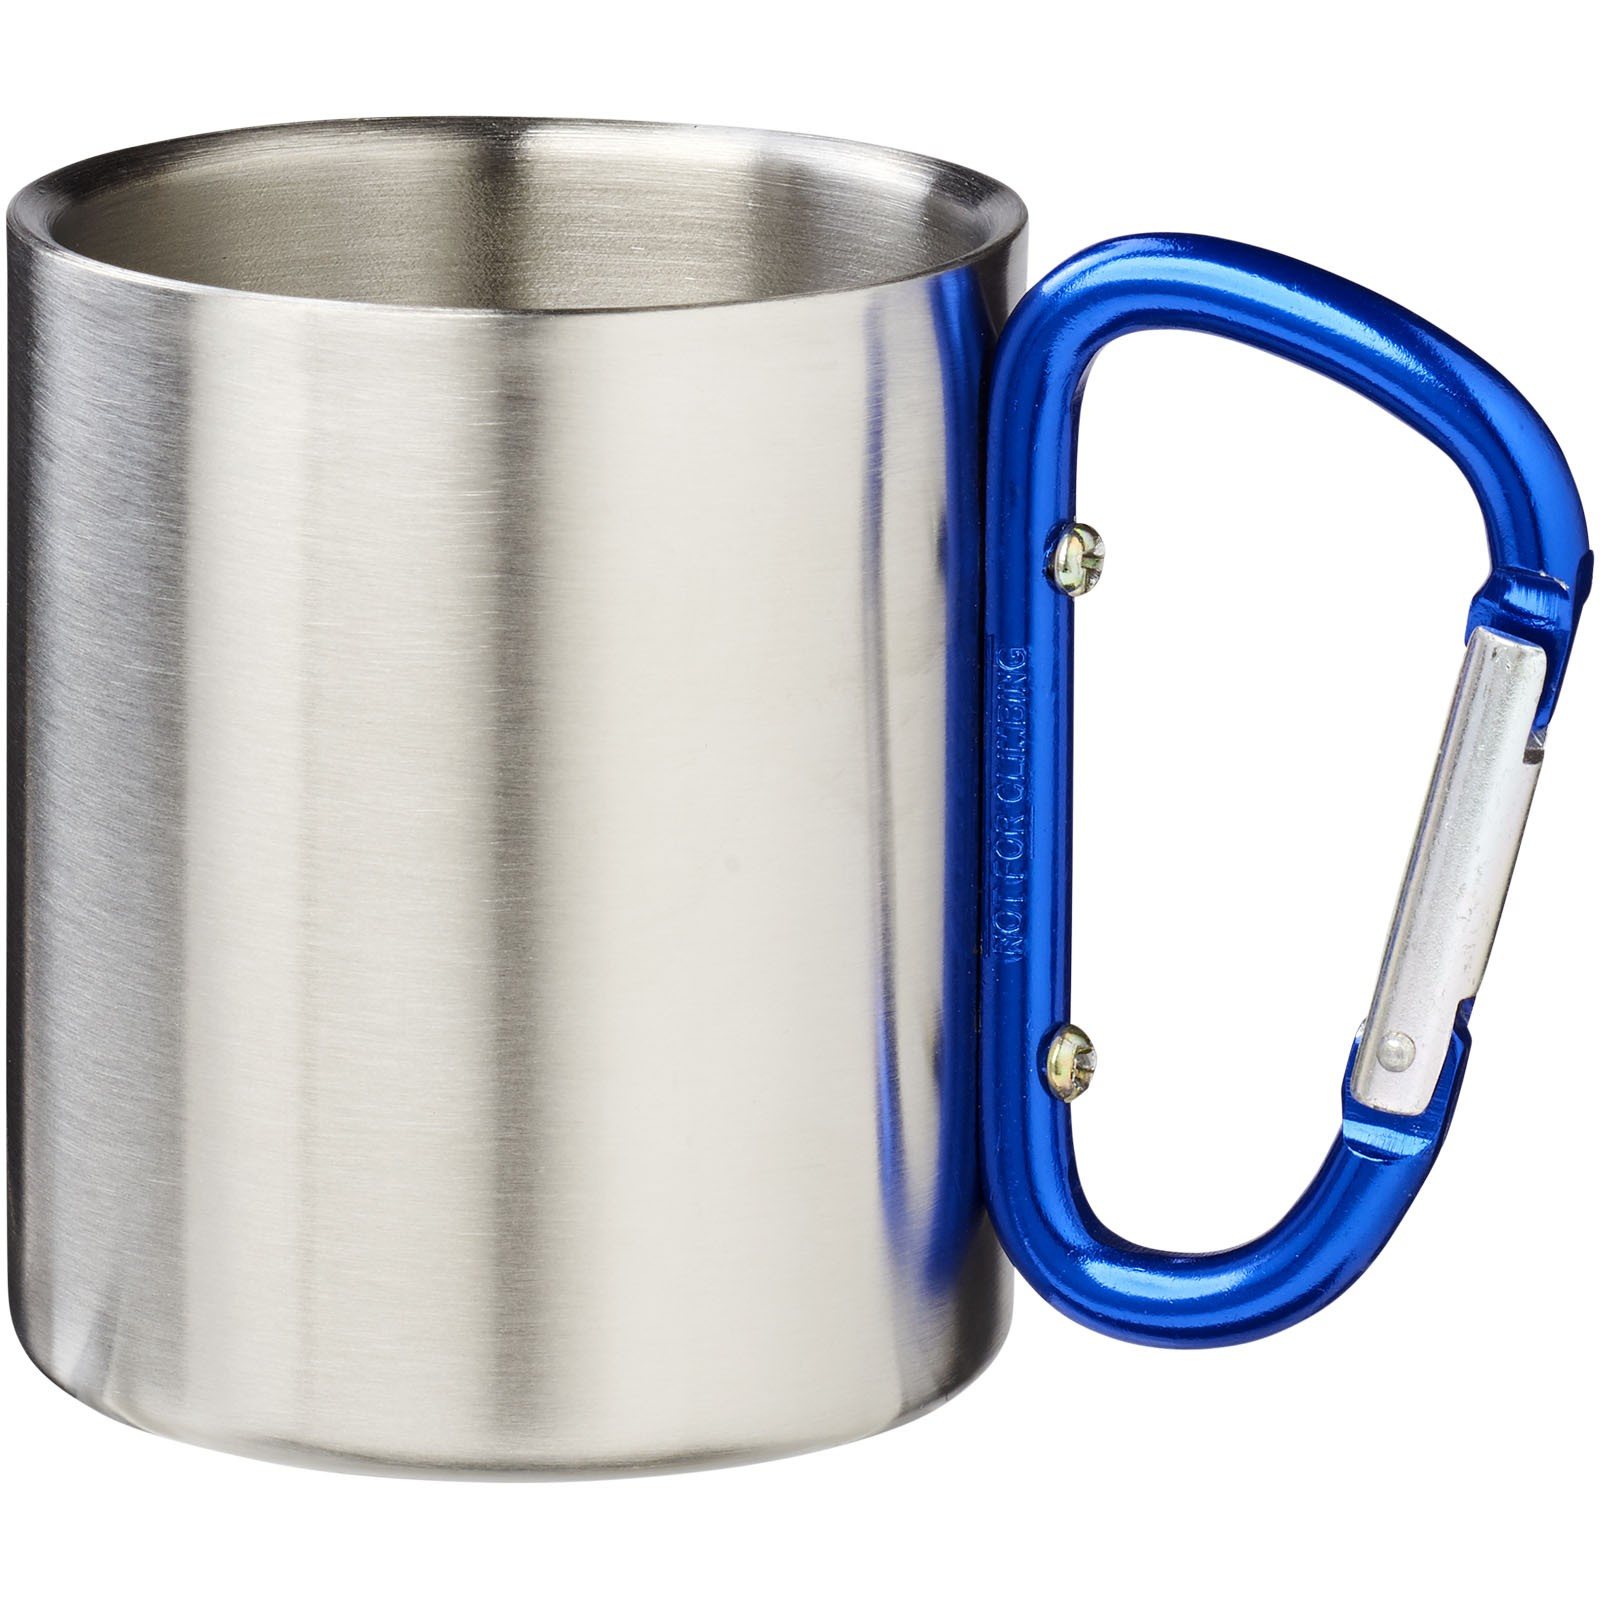 Alps 200 ml insulated mug with carabiner - Blue